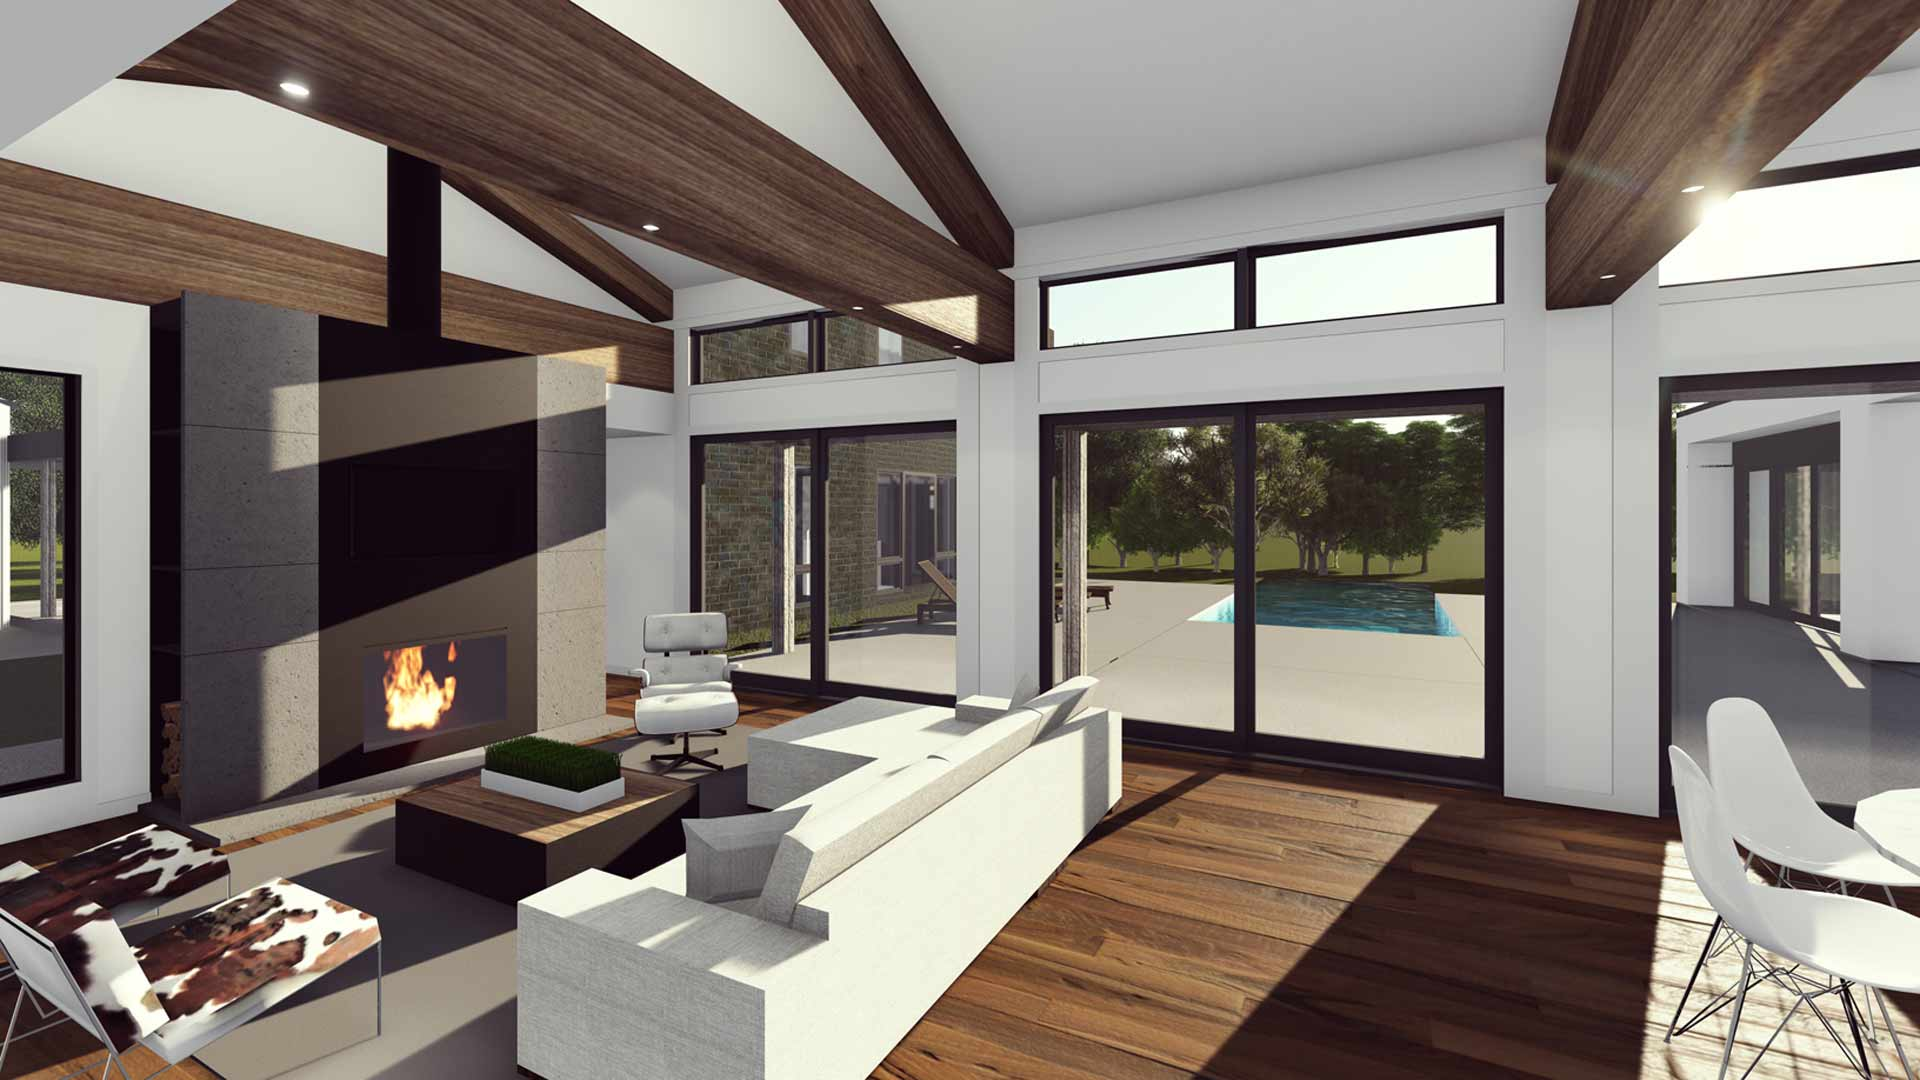 New modern house ditch interior rendering haus architecture christopher short indianapolis architect